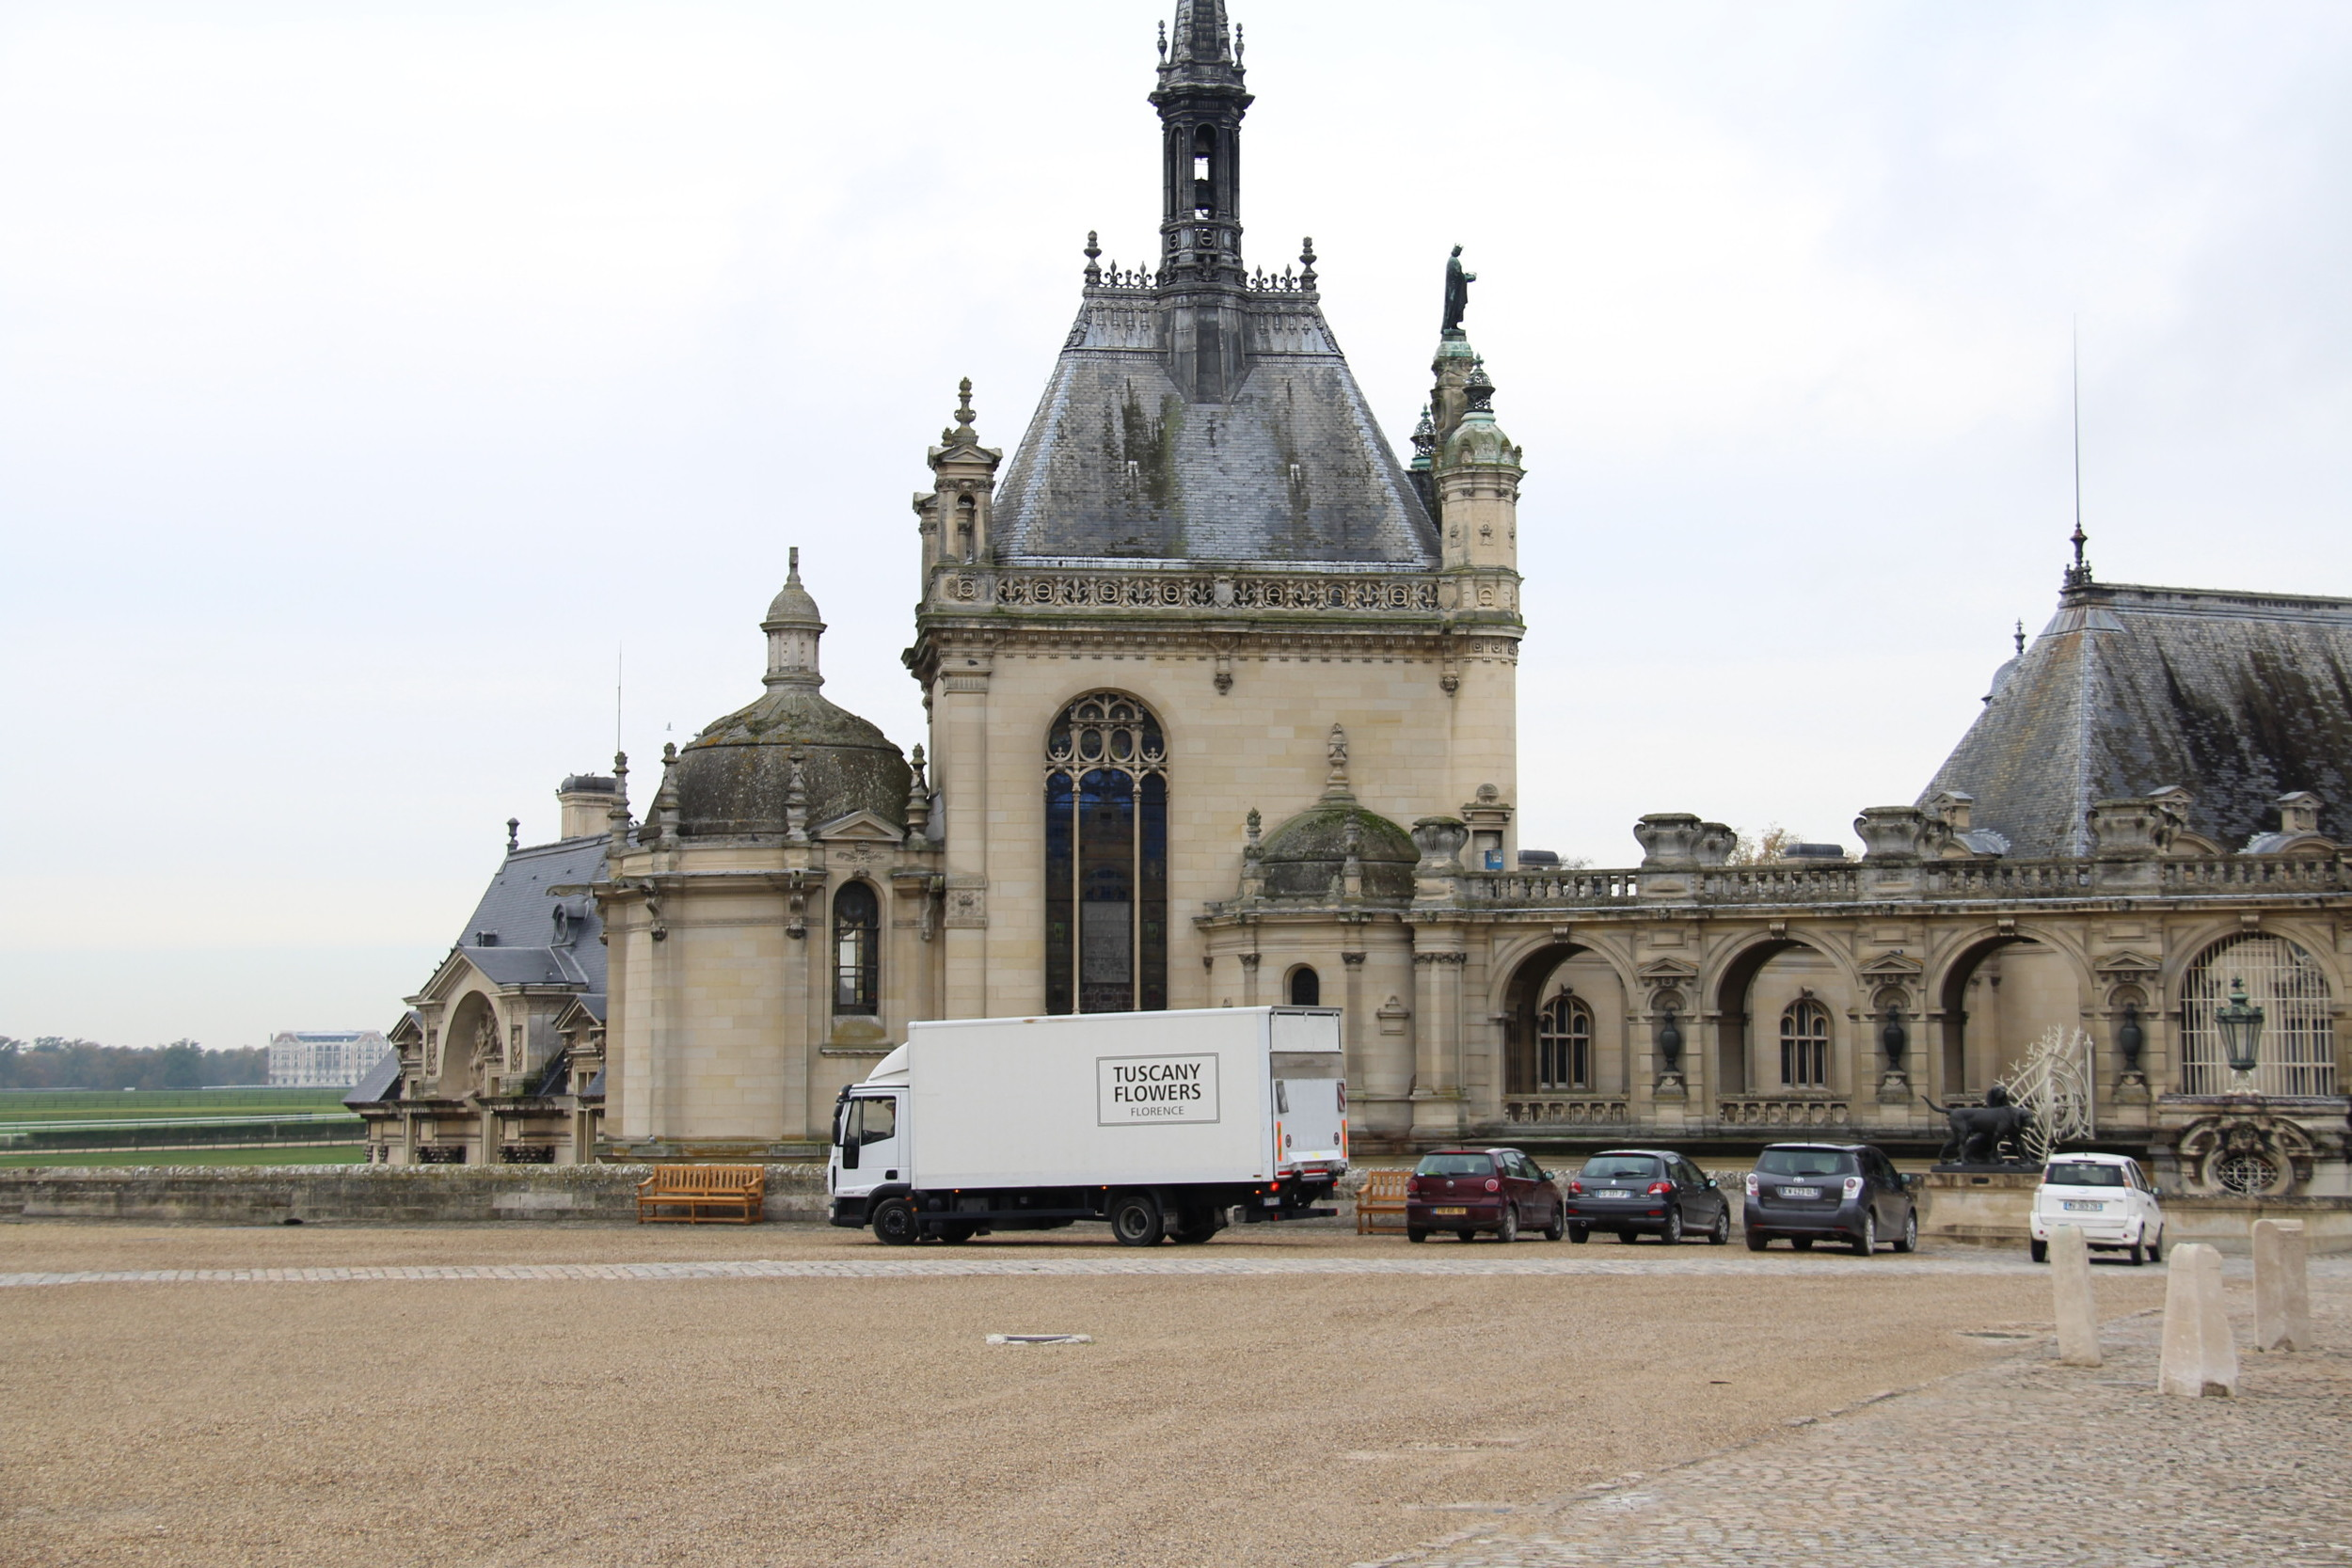 Our arrival at the beautiful Chantilly!